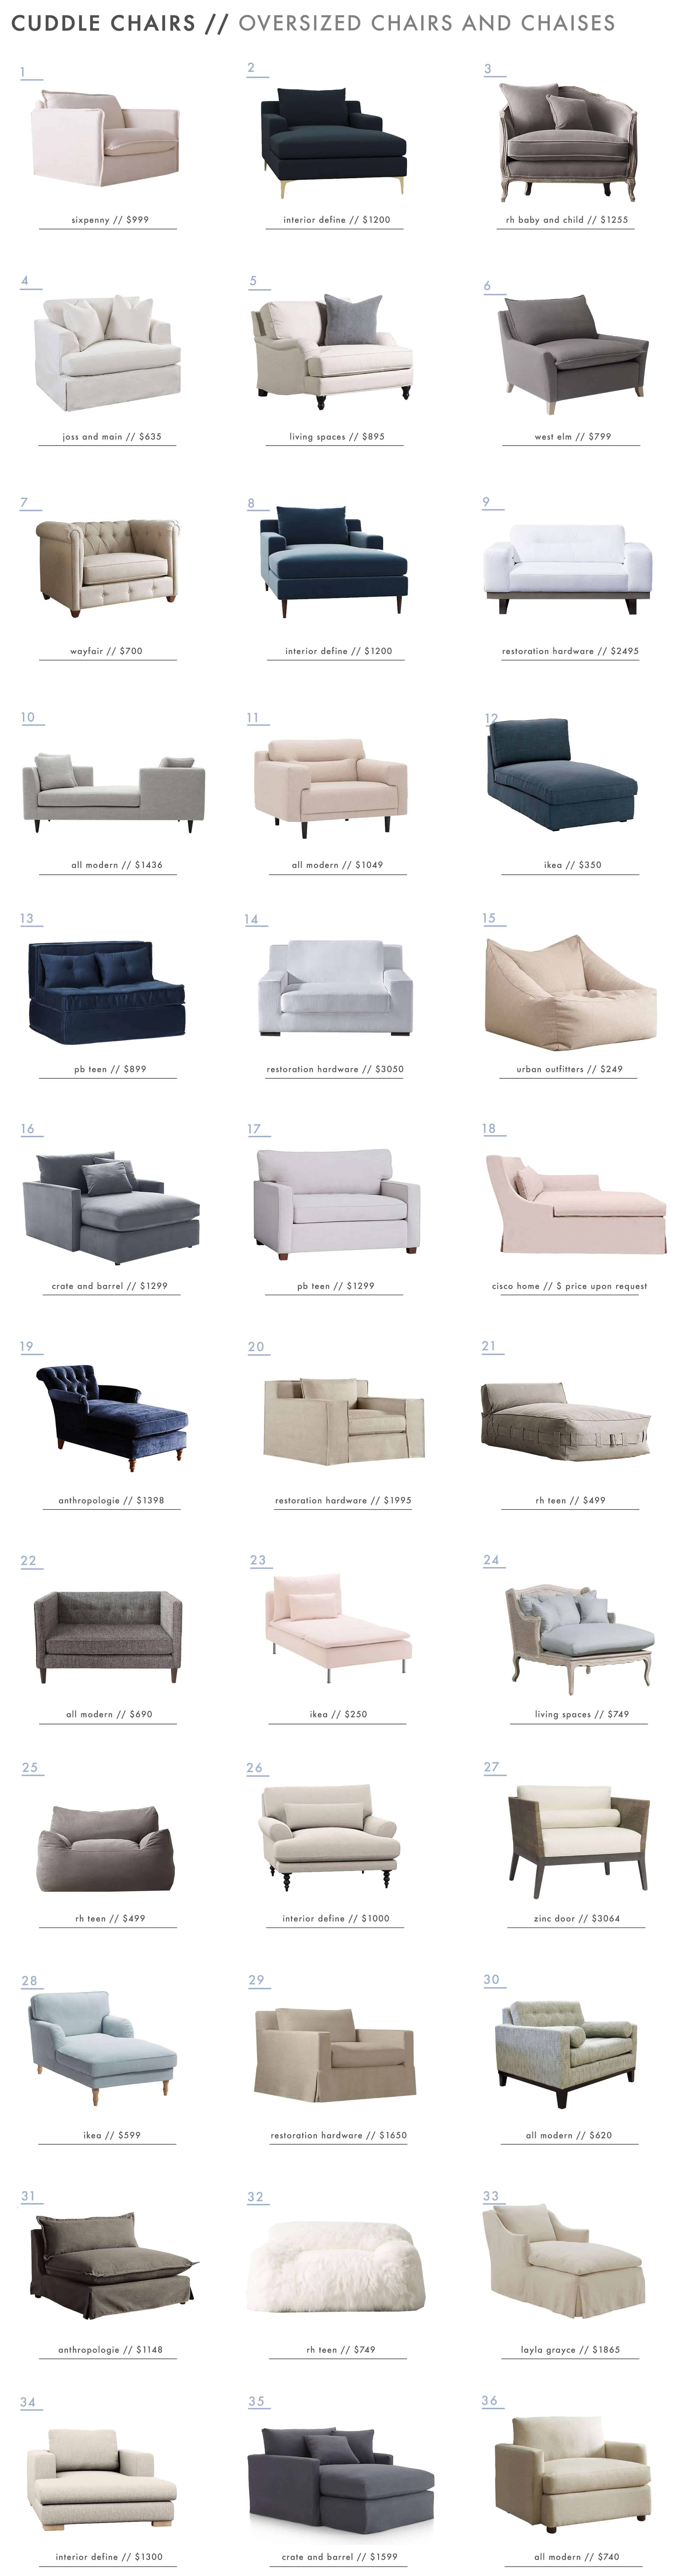 Emily Henderson Oversized Chairs Chair And A Half Chaise Lounge Roundup Edited 1000px 1